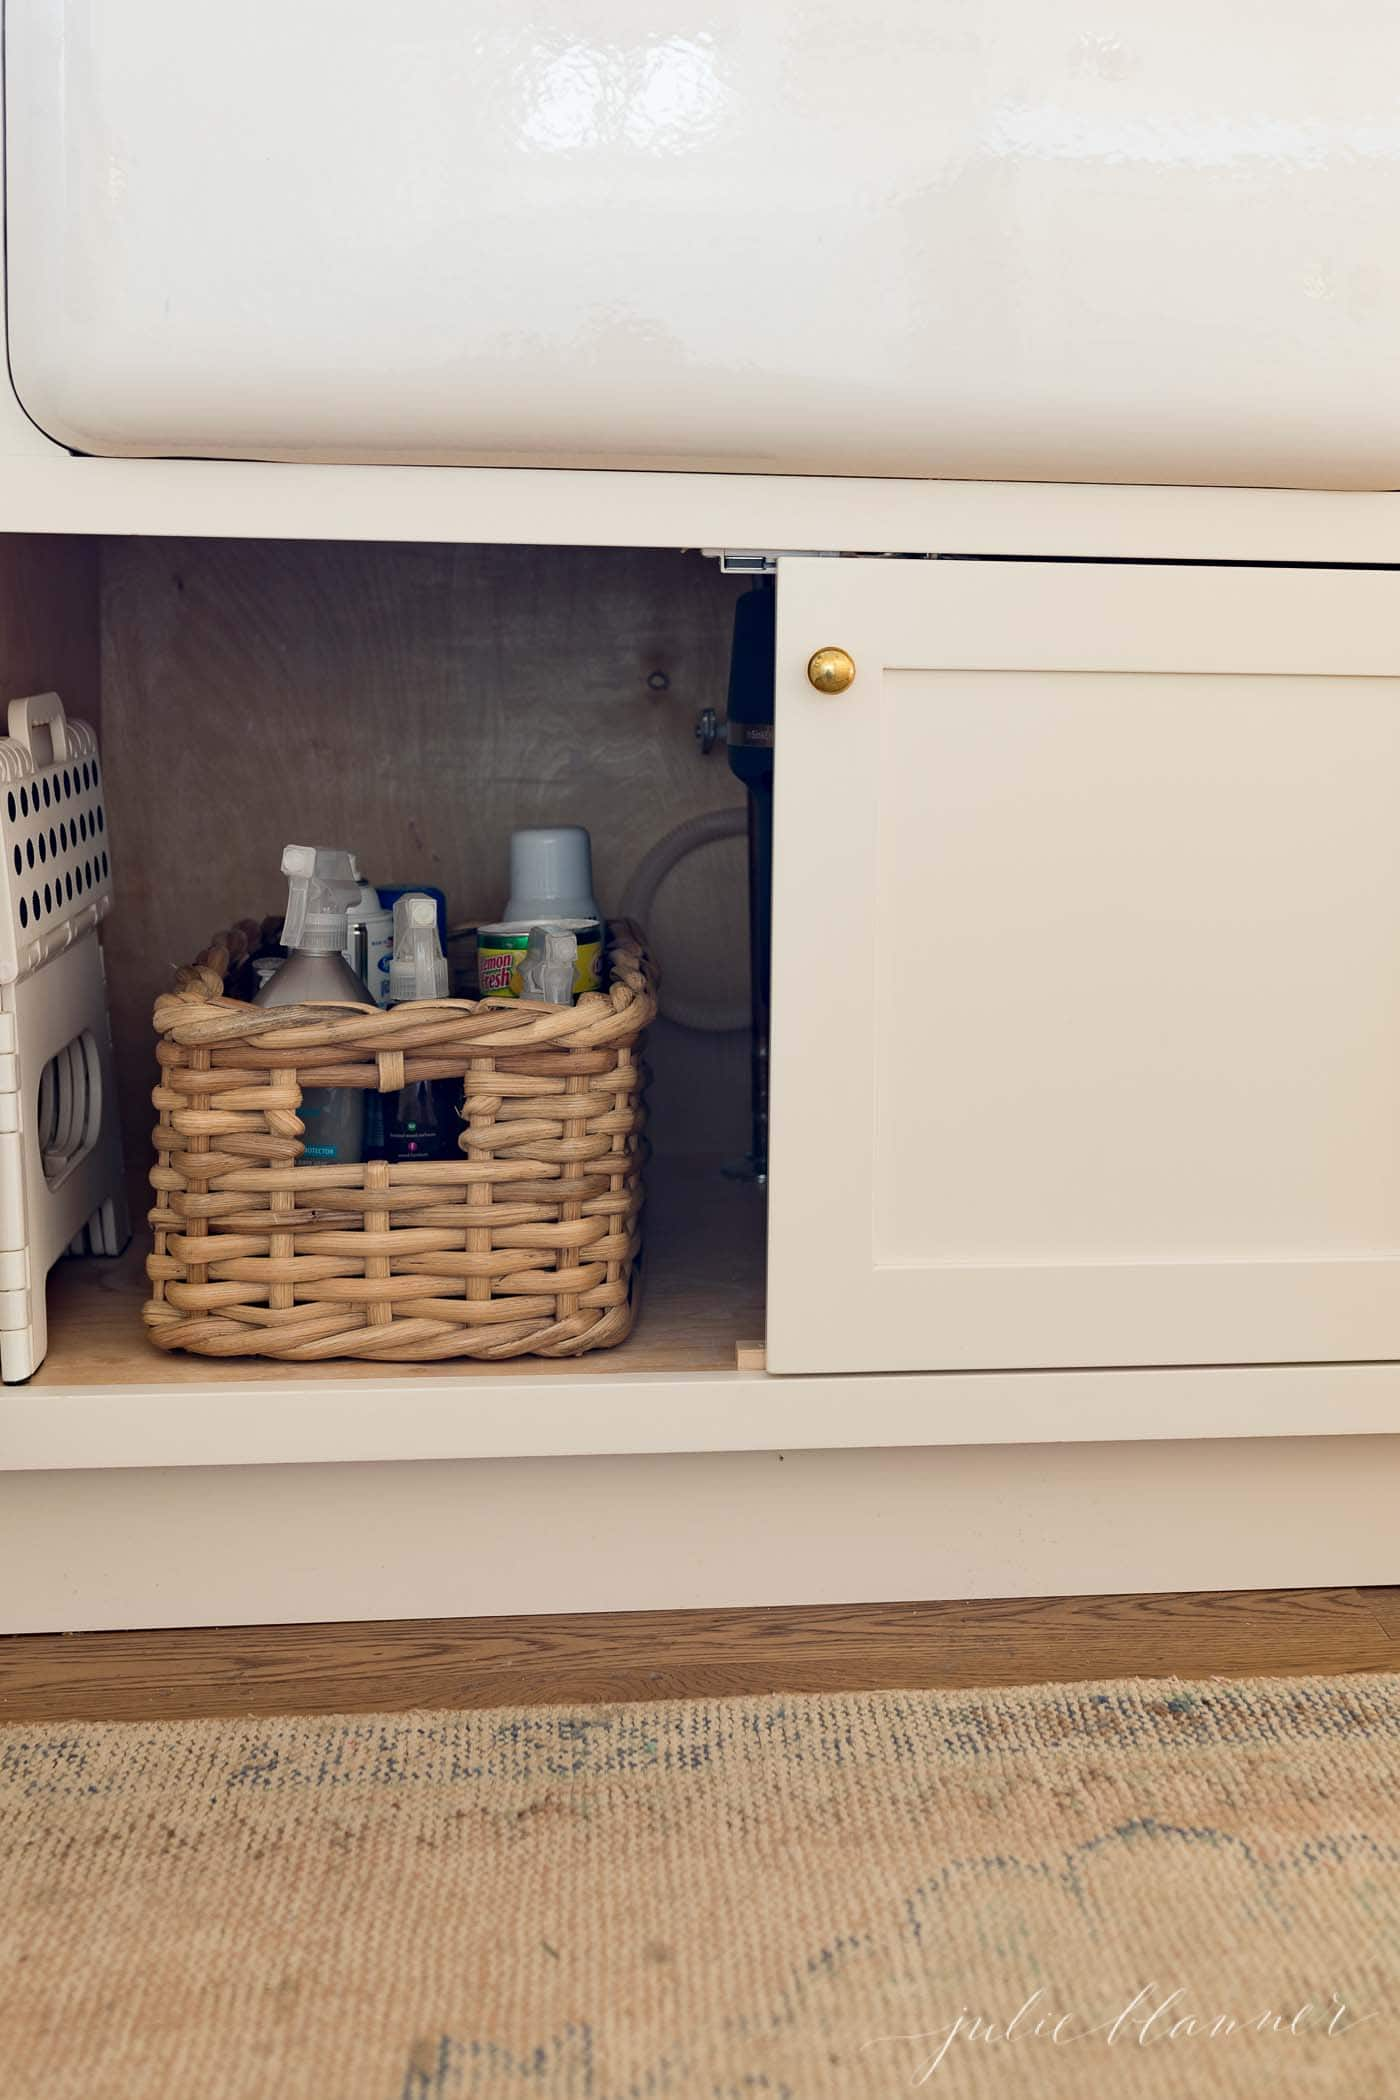 under sink cabinet, one door open to show a basket filled with cleaning supplies.